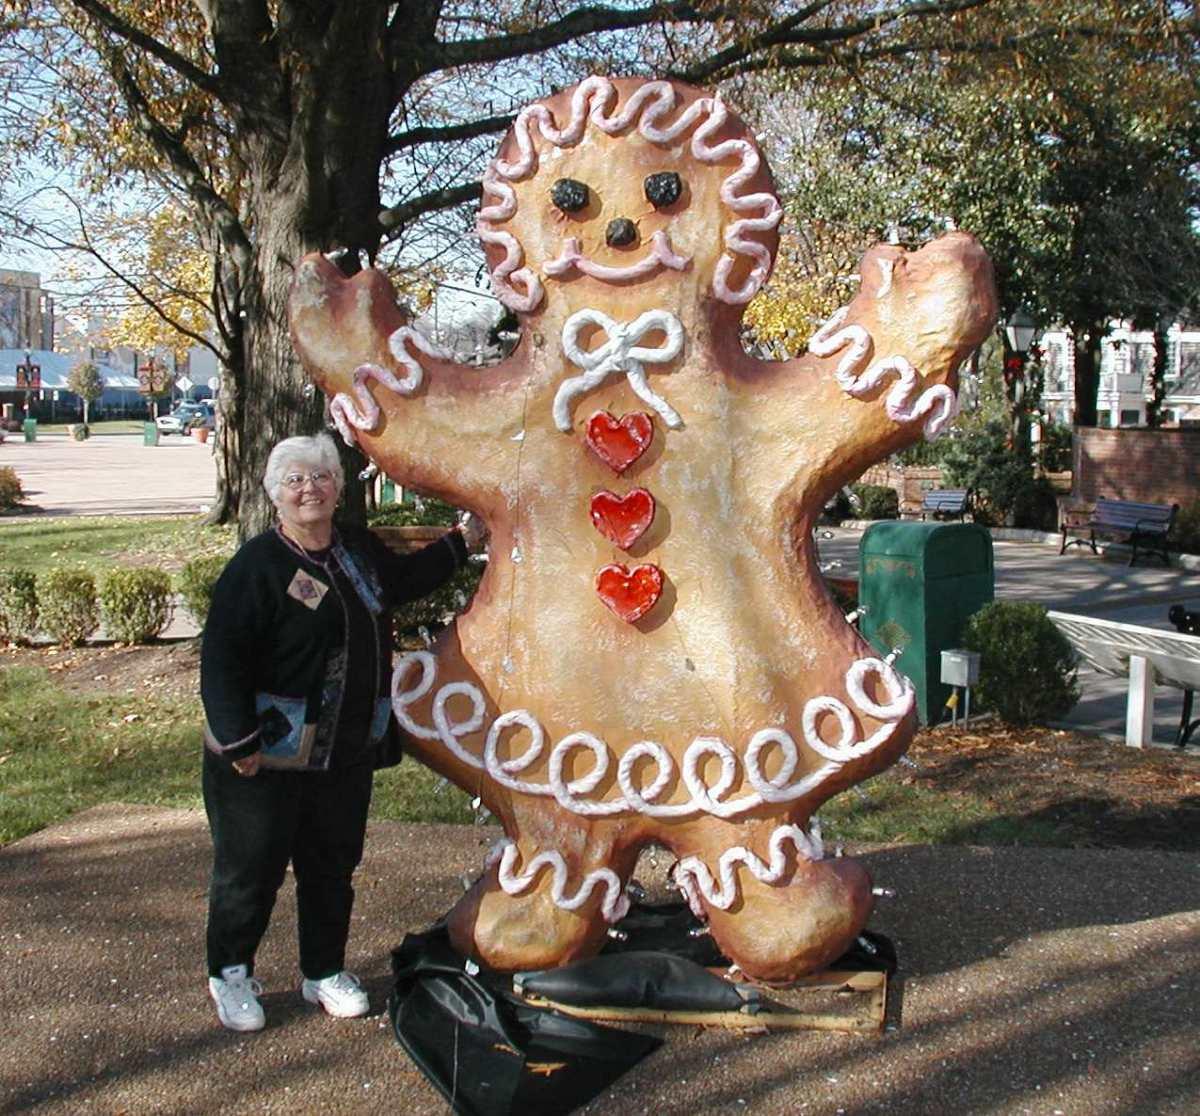 Christmas Gingerbread Girl.  Opry Land Holiday display. Nashville, TN